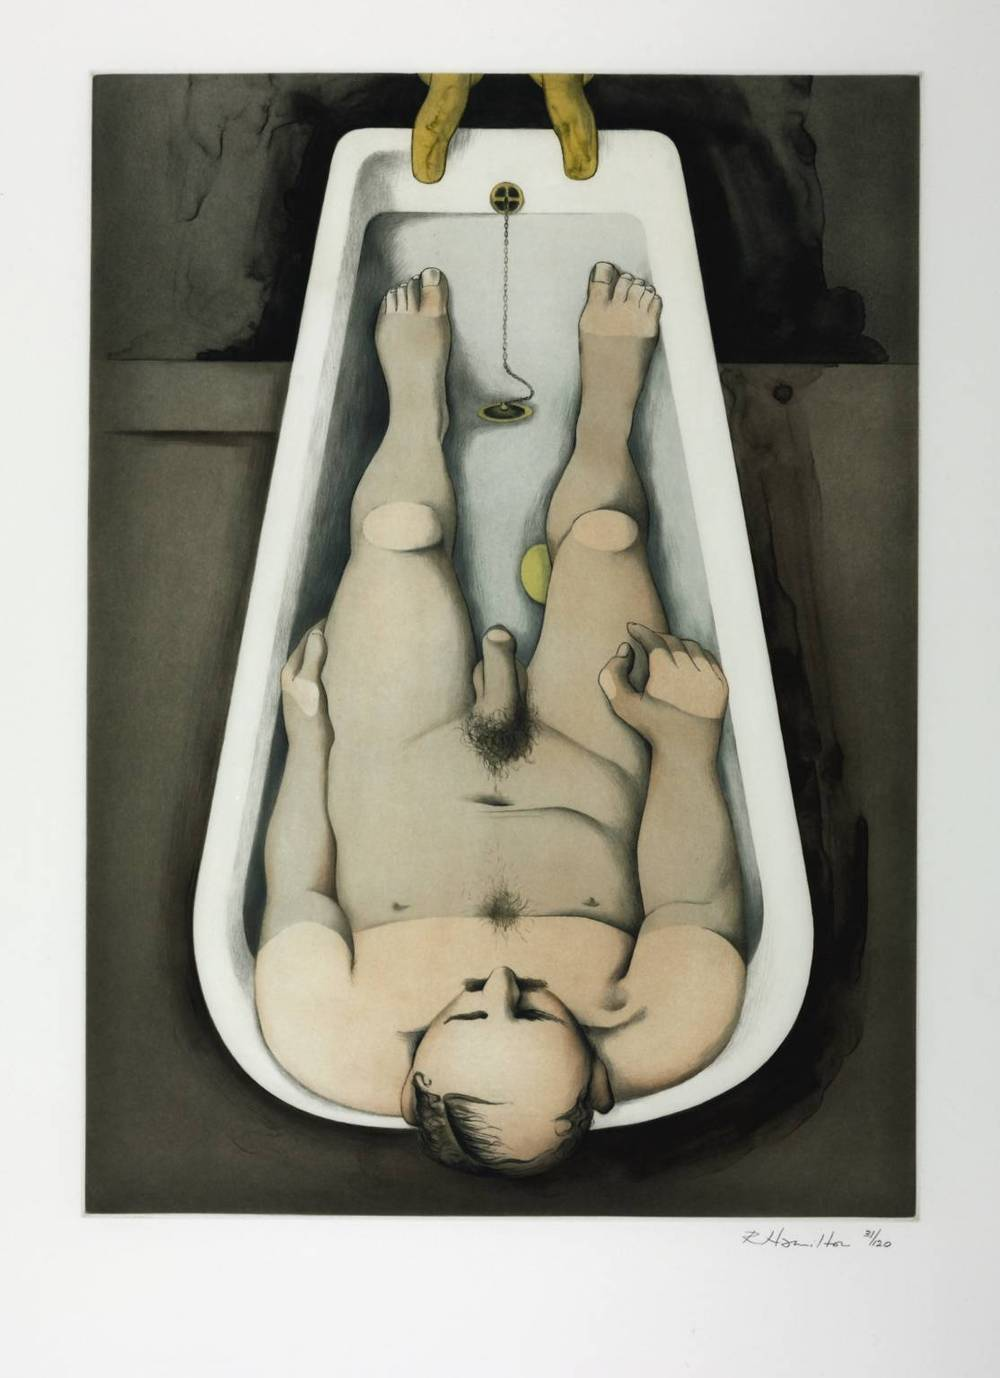 'He foresaw his pale body.'  Richard Hamilton